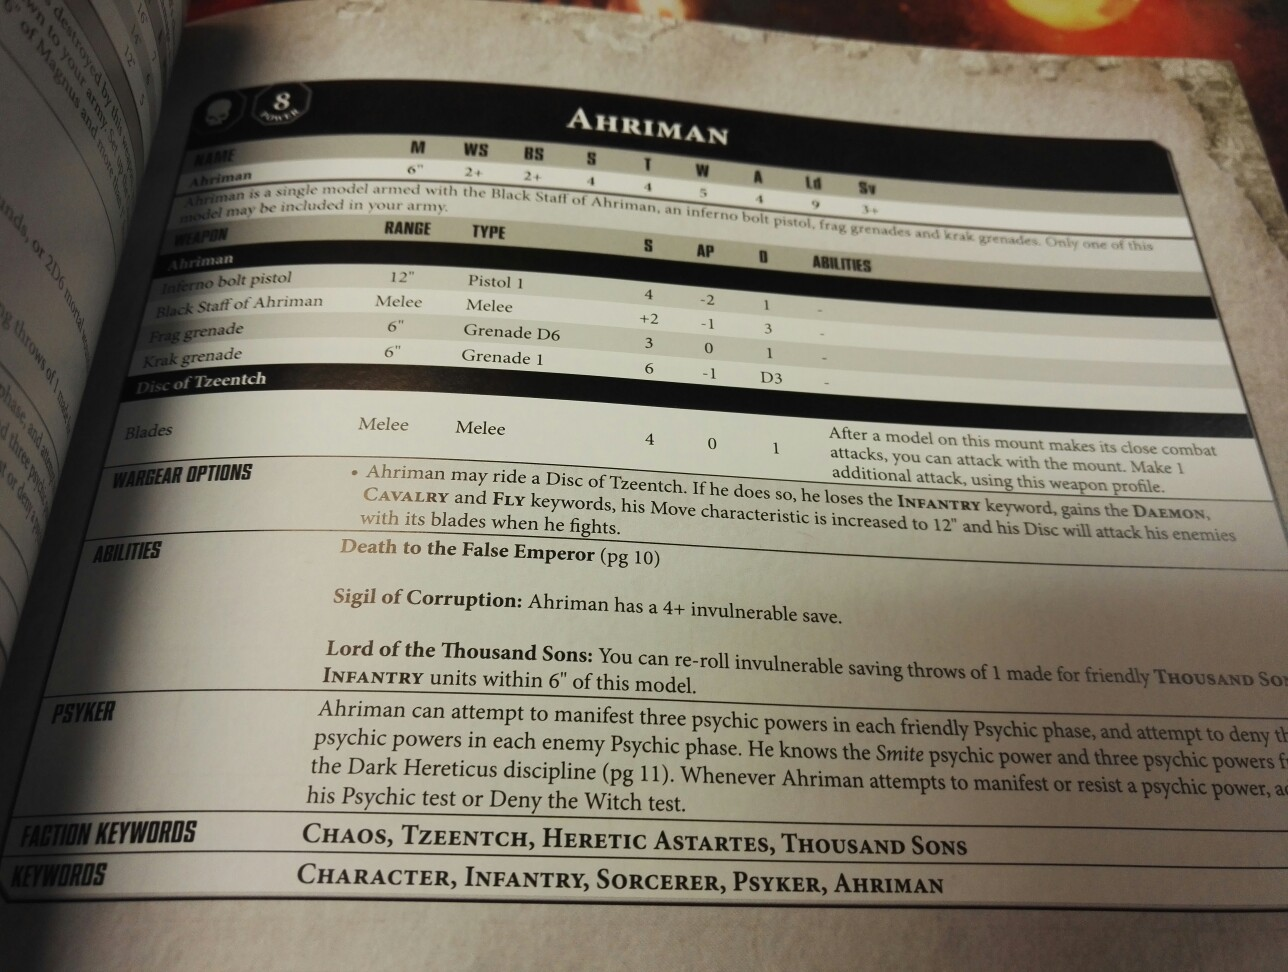 Ahriman and Magnus the Red stats revealed - Stepping Between Games